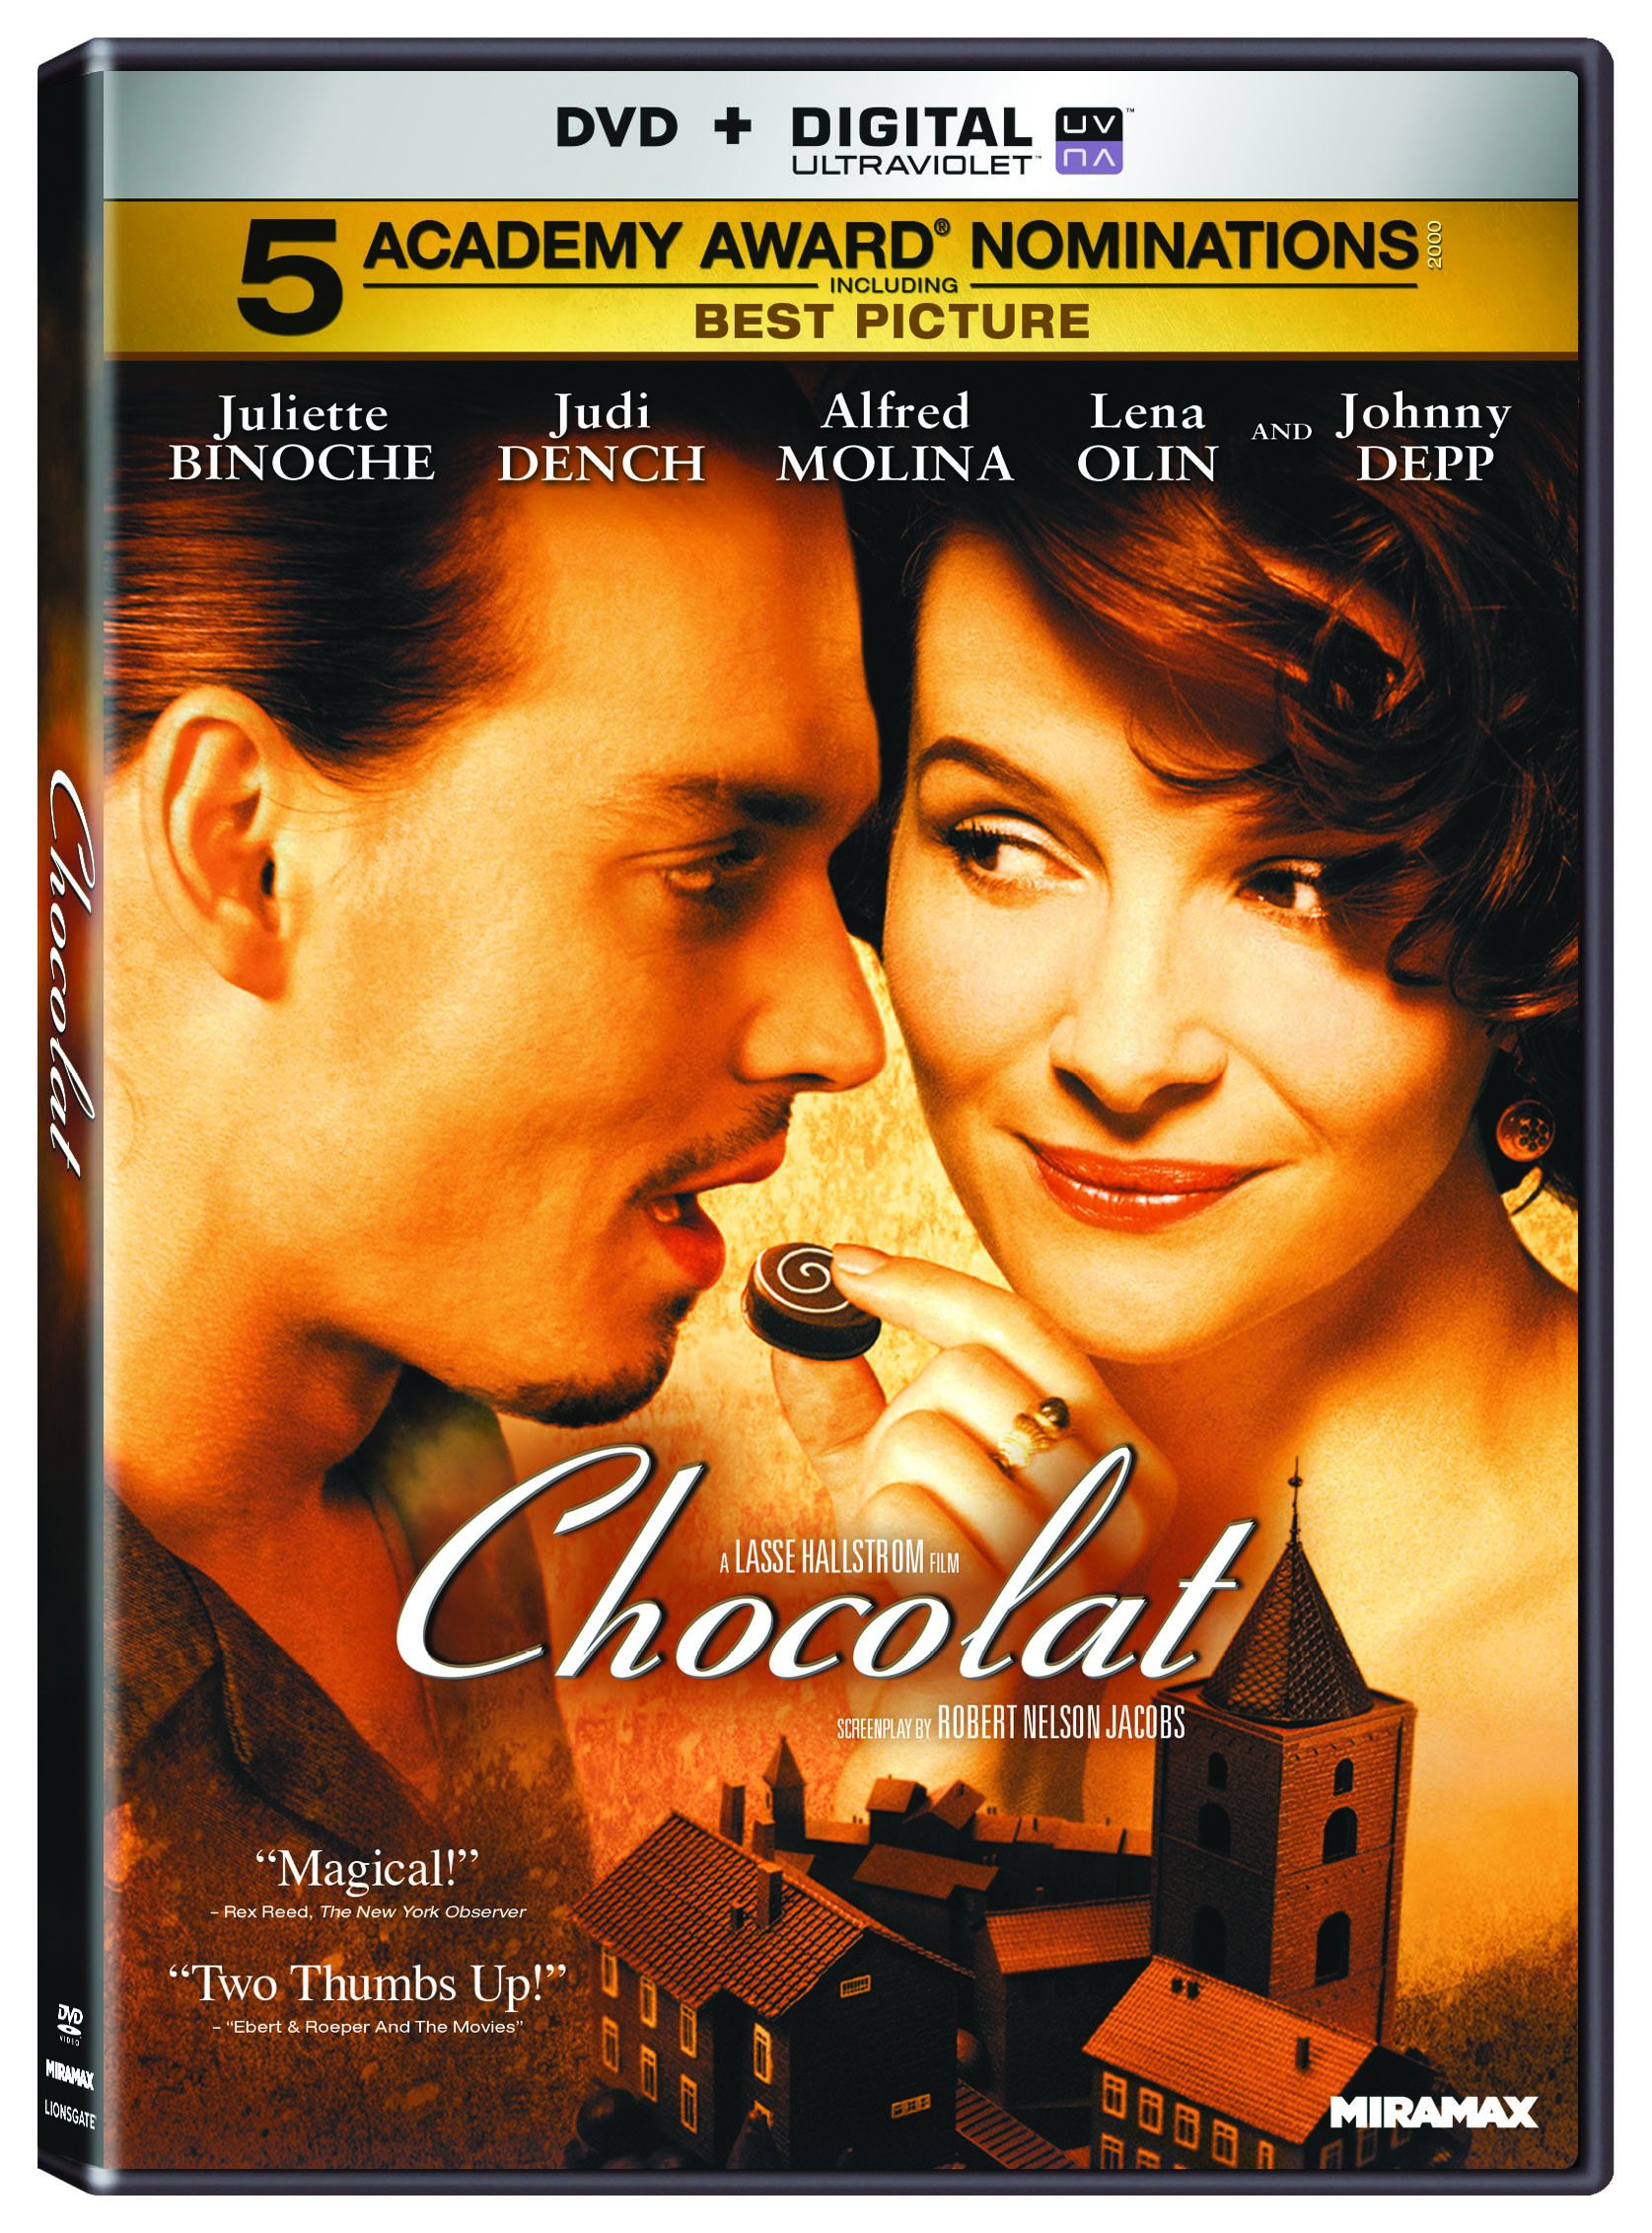 DVD : Chocolat (Widescreen, AC-3, Dolby)